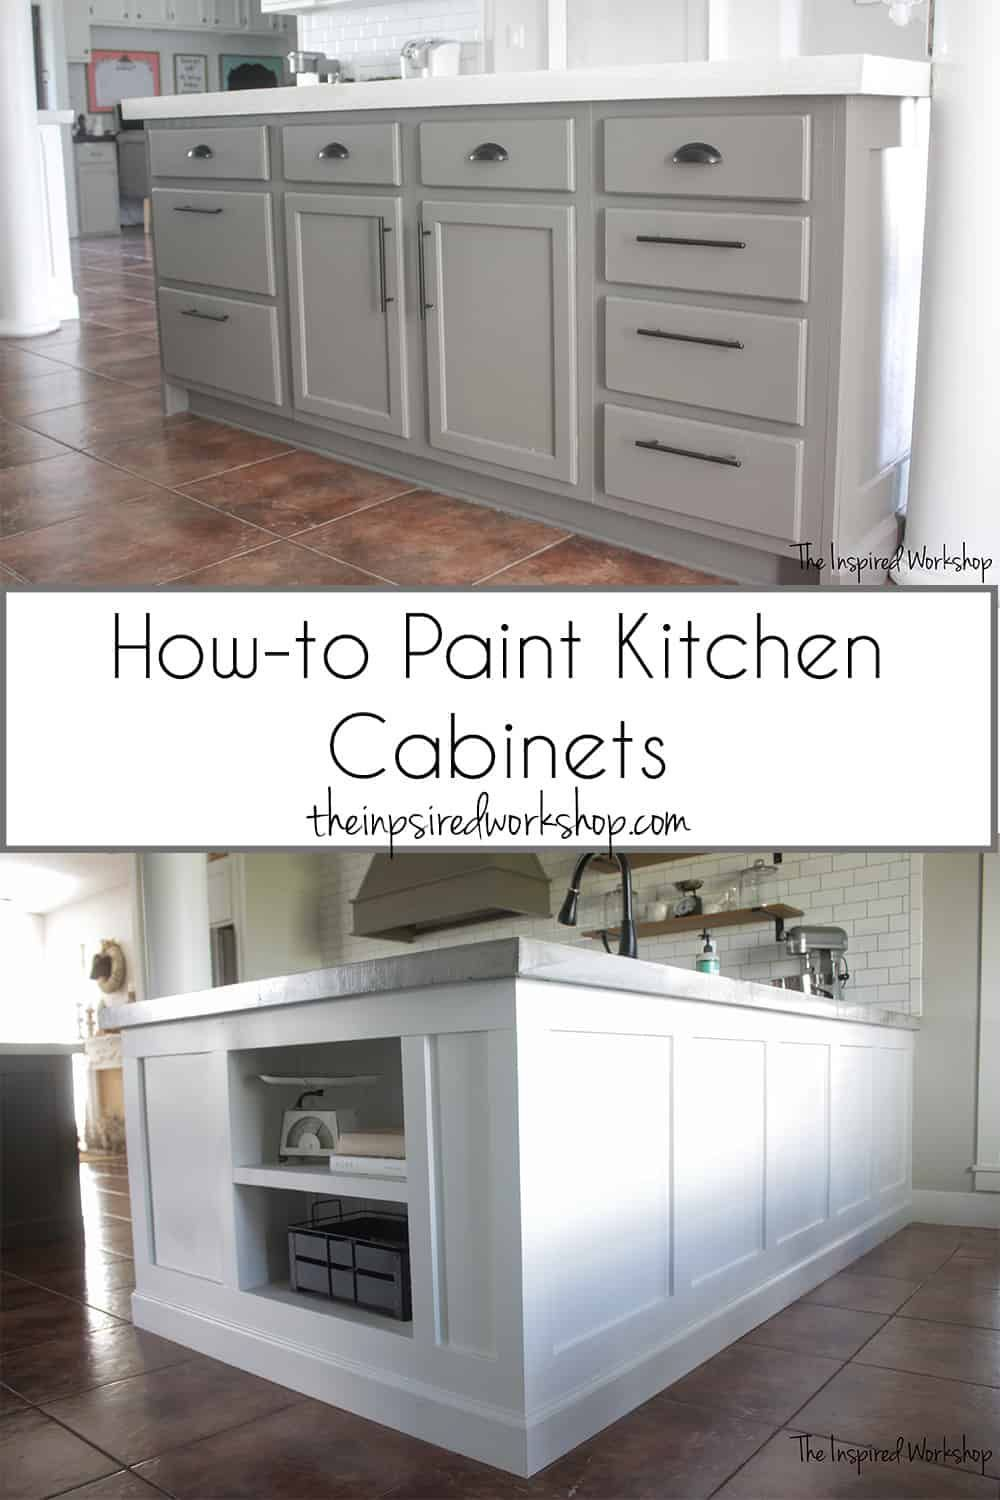 How To Paint Kitchen Cabinets Step By Step Tutorial To Show You How Easy You Can Paint Your Kitchen Cabinets Tips And Tricks